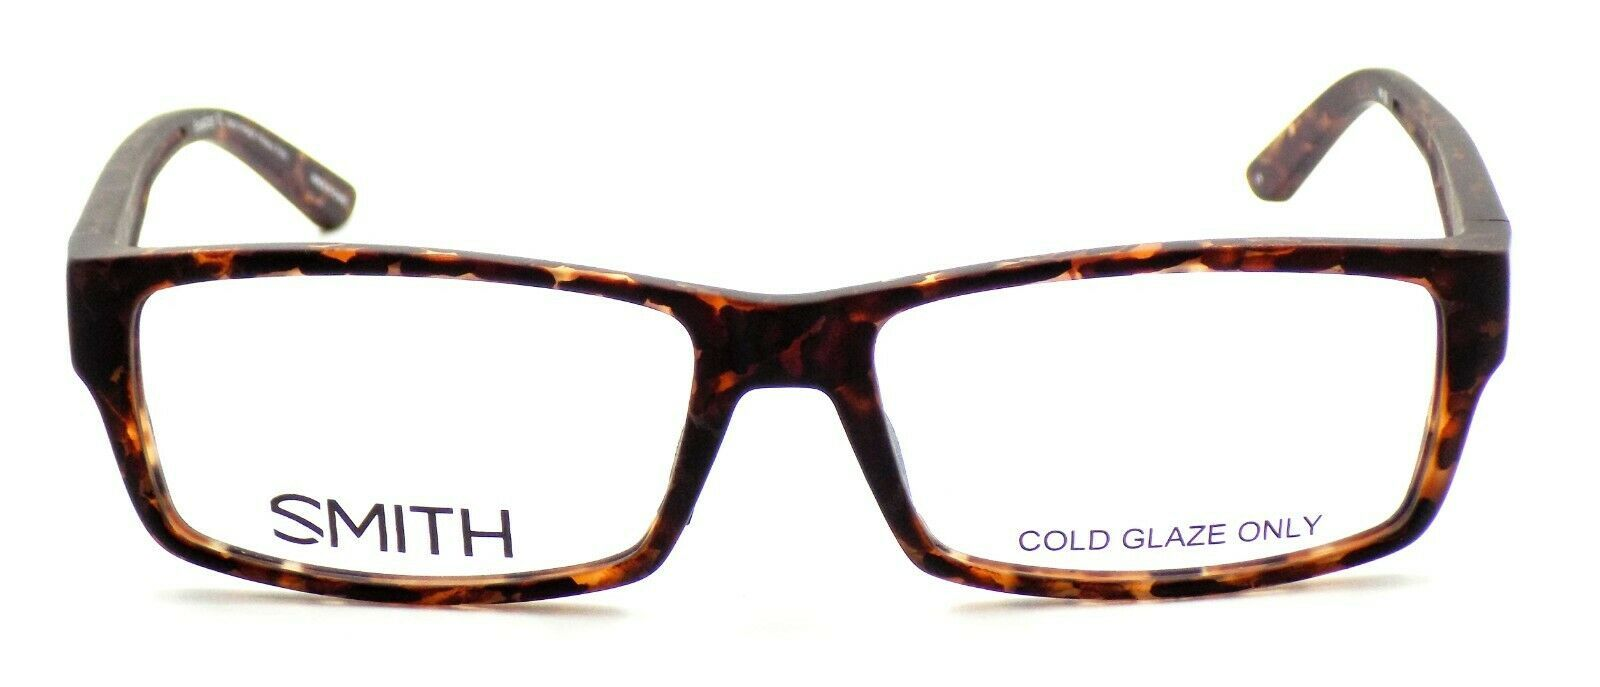 SMITH Optics Broadcast XL FWH Men's Eyeglasses Frames 56-16-140 Matte Havana